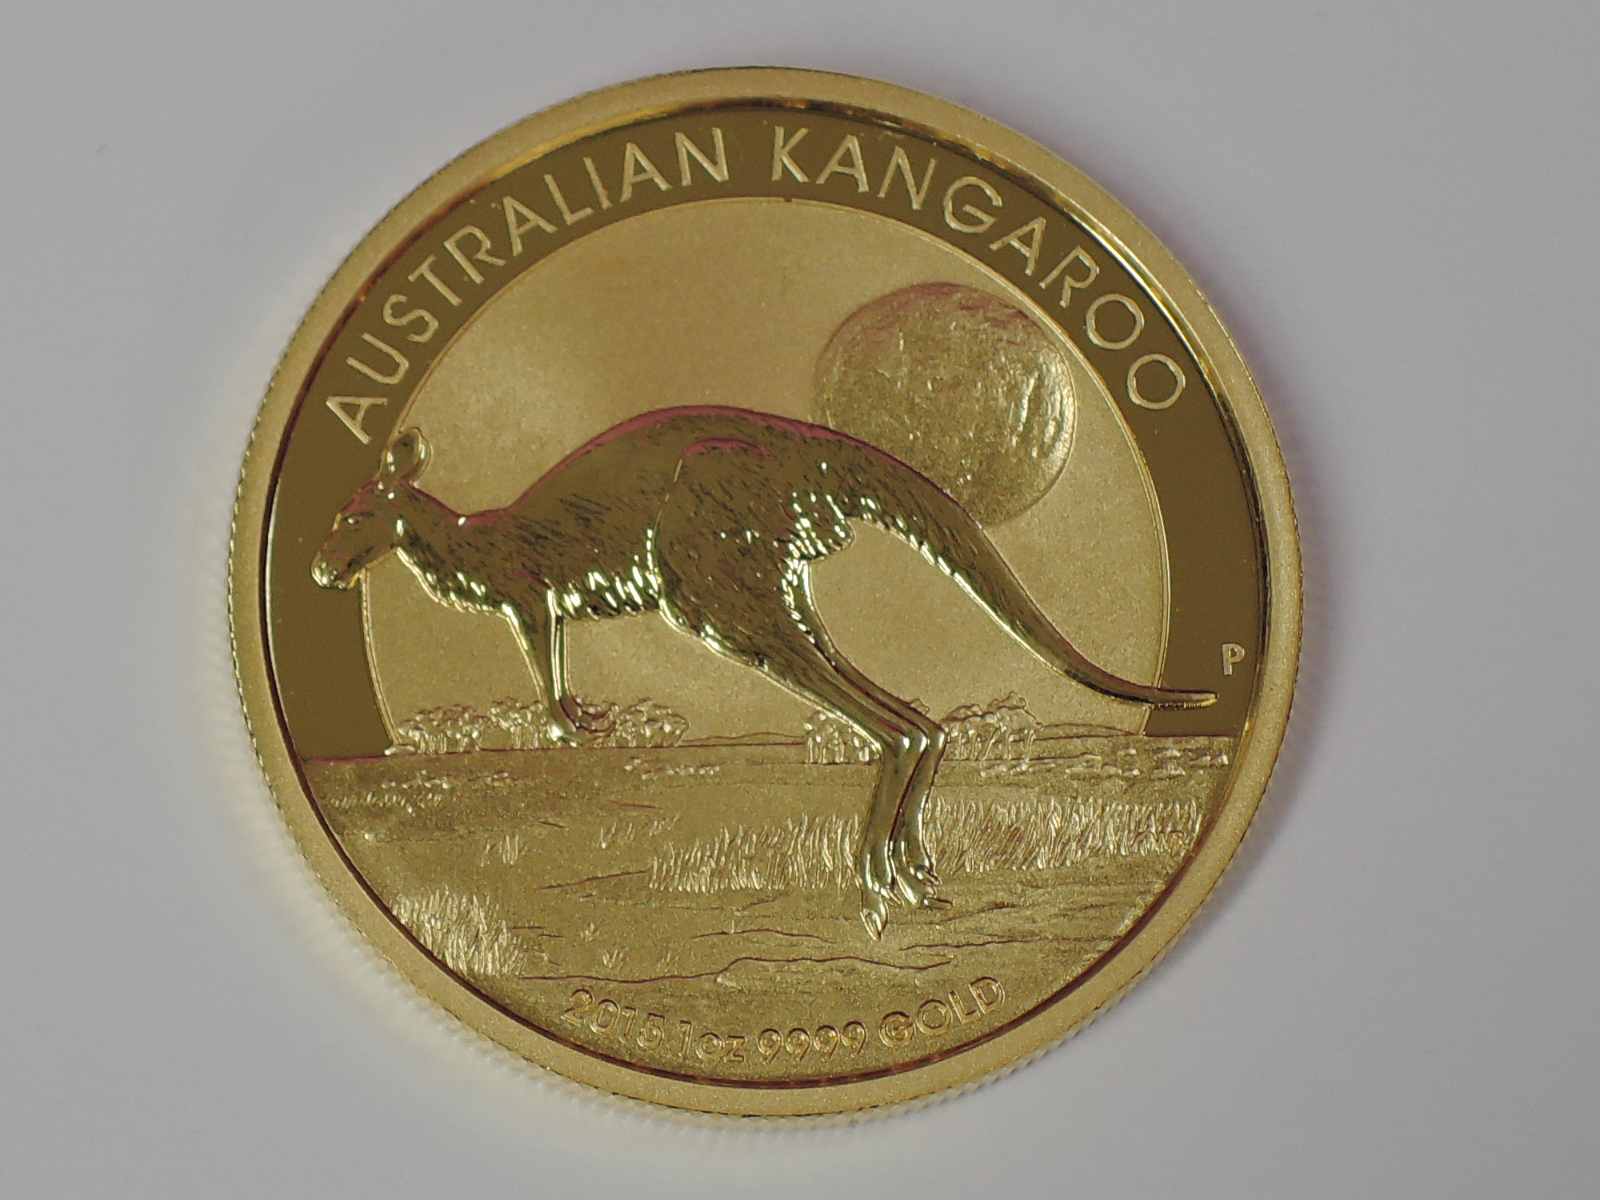 Lot 608 - A gold 1oz 2015 100 dollar Australian Kangaroo coin, in plastic case